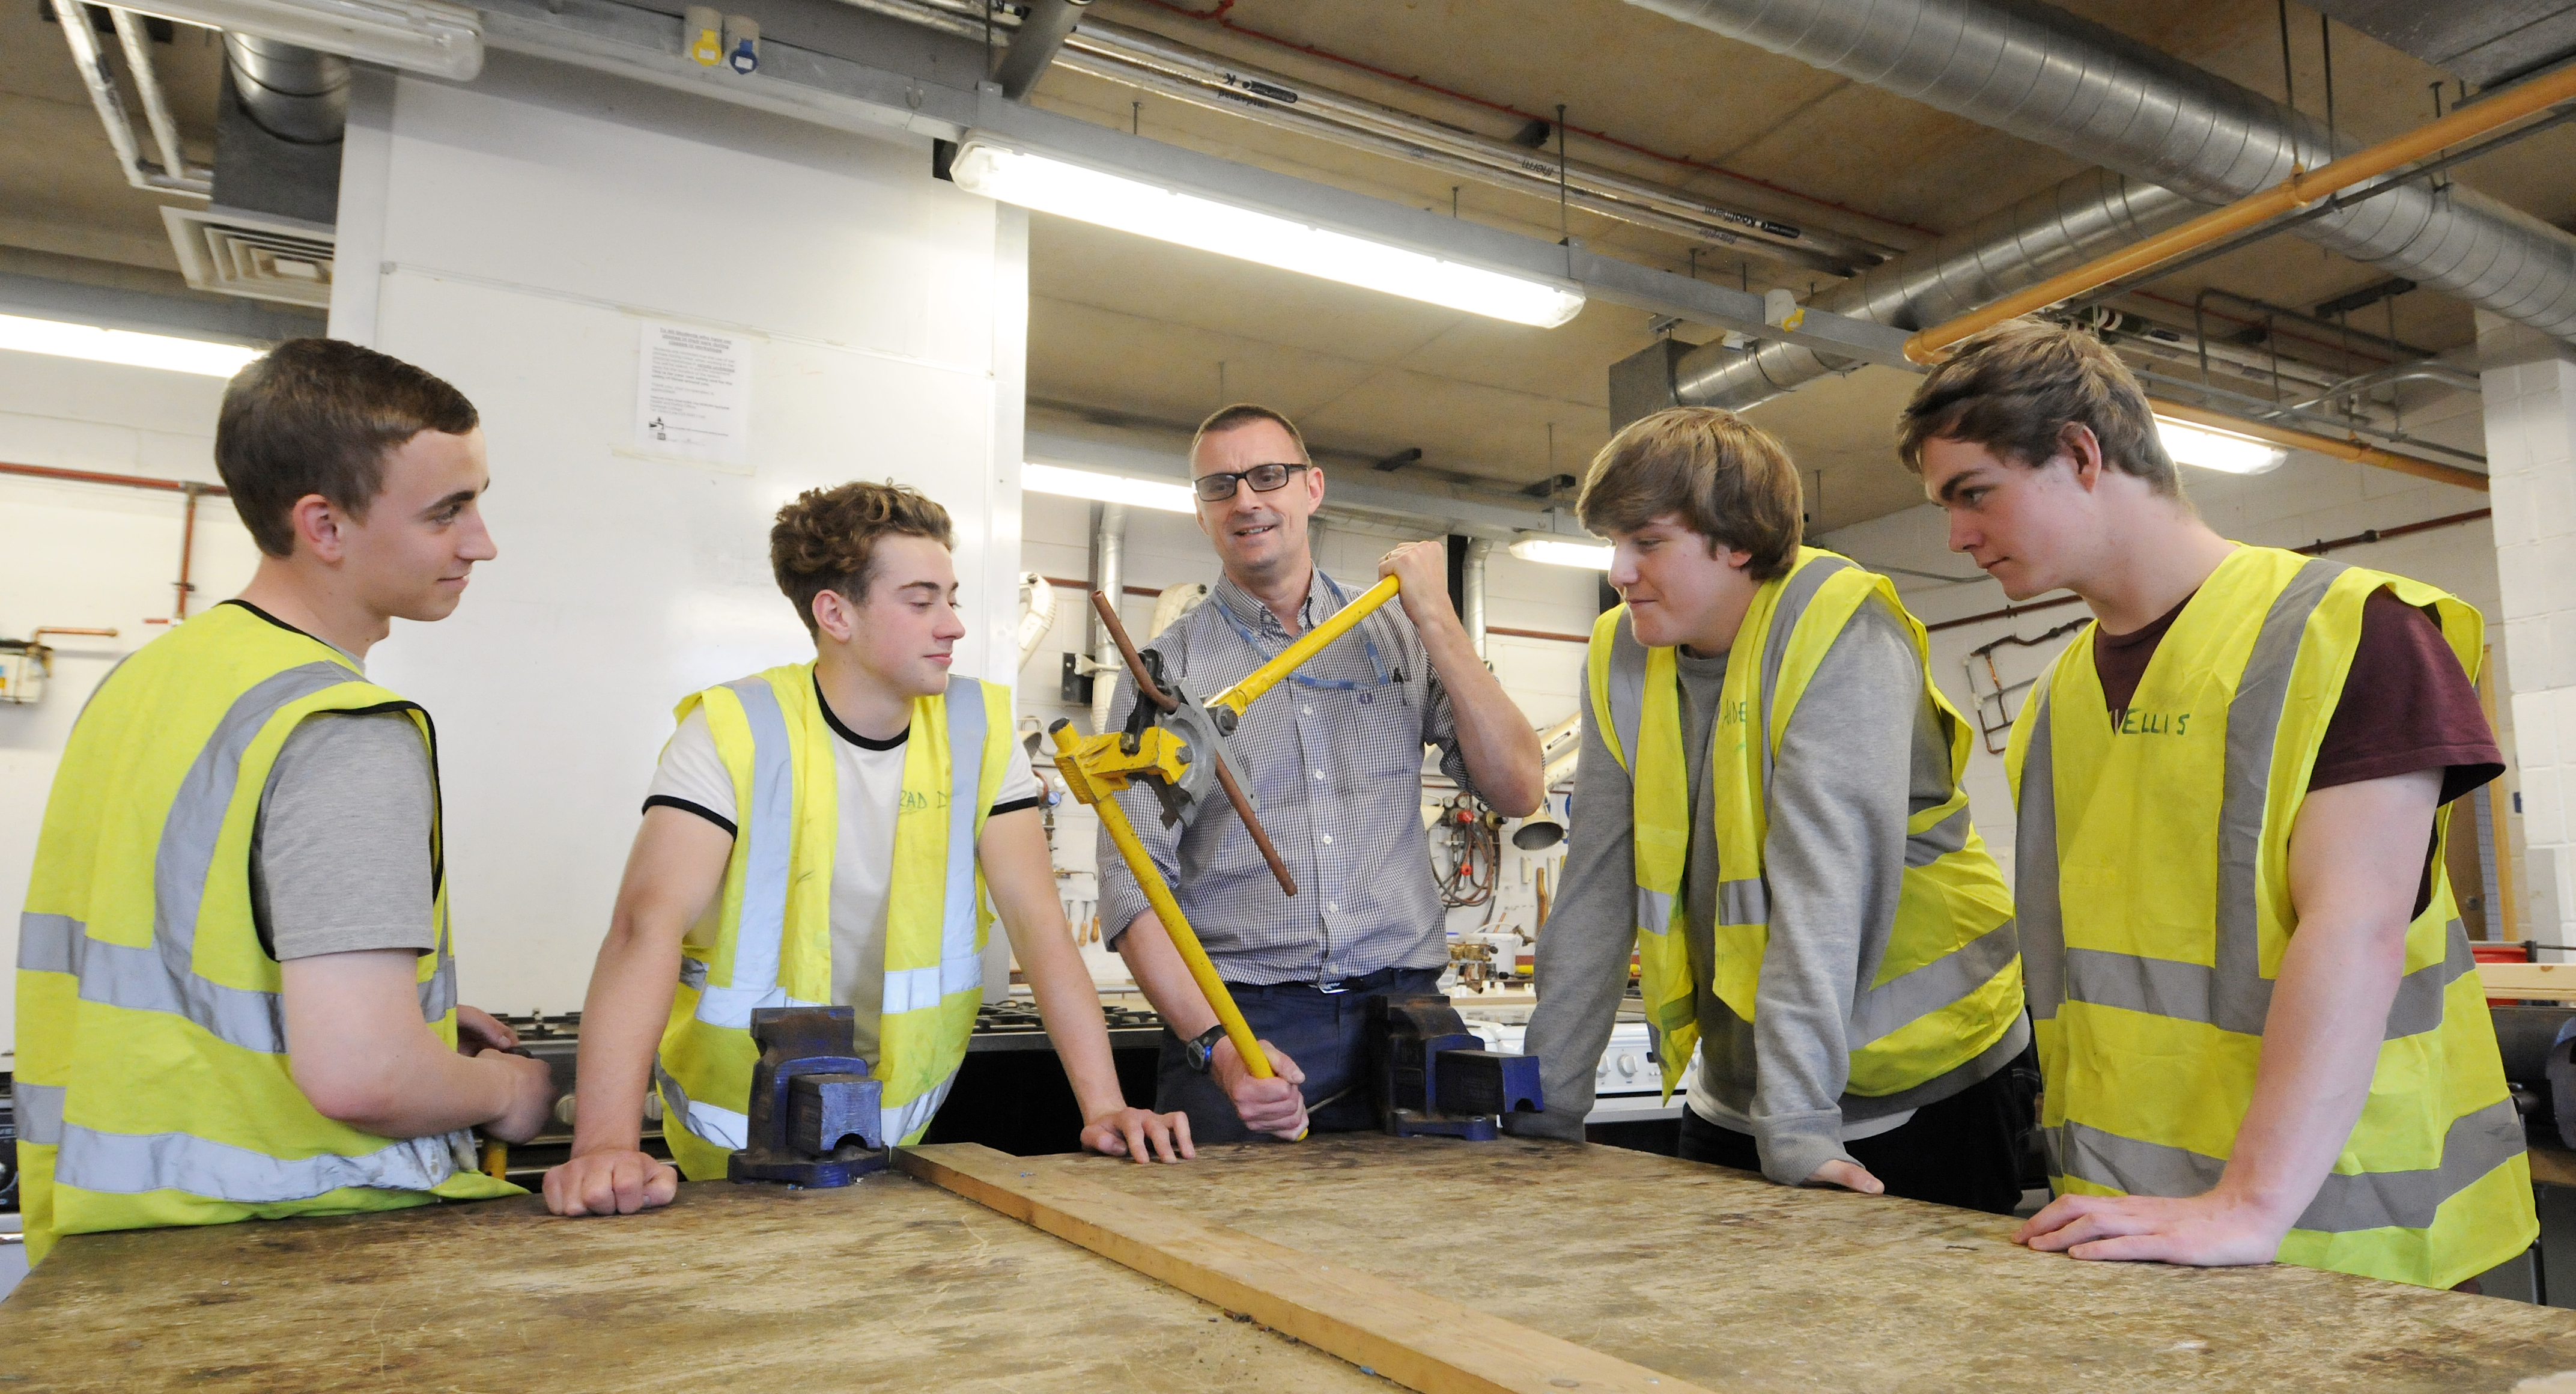 Eastleigh College partners with UCEM to deliver Apprenticeship training